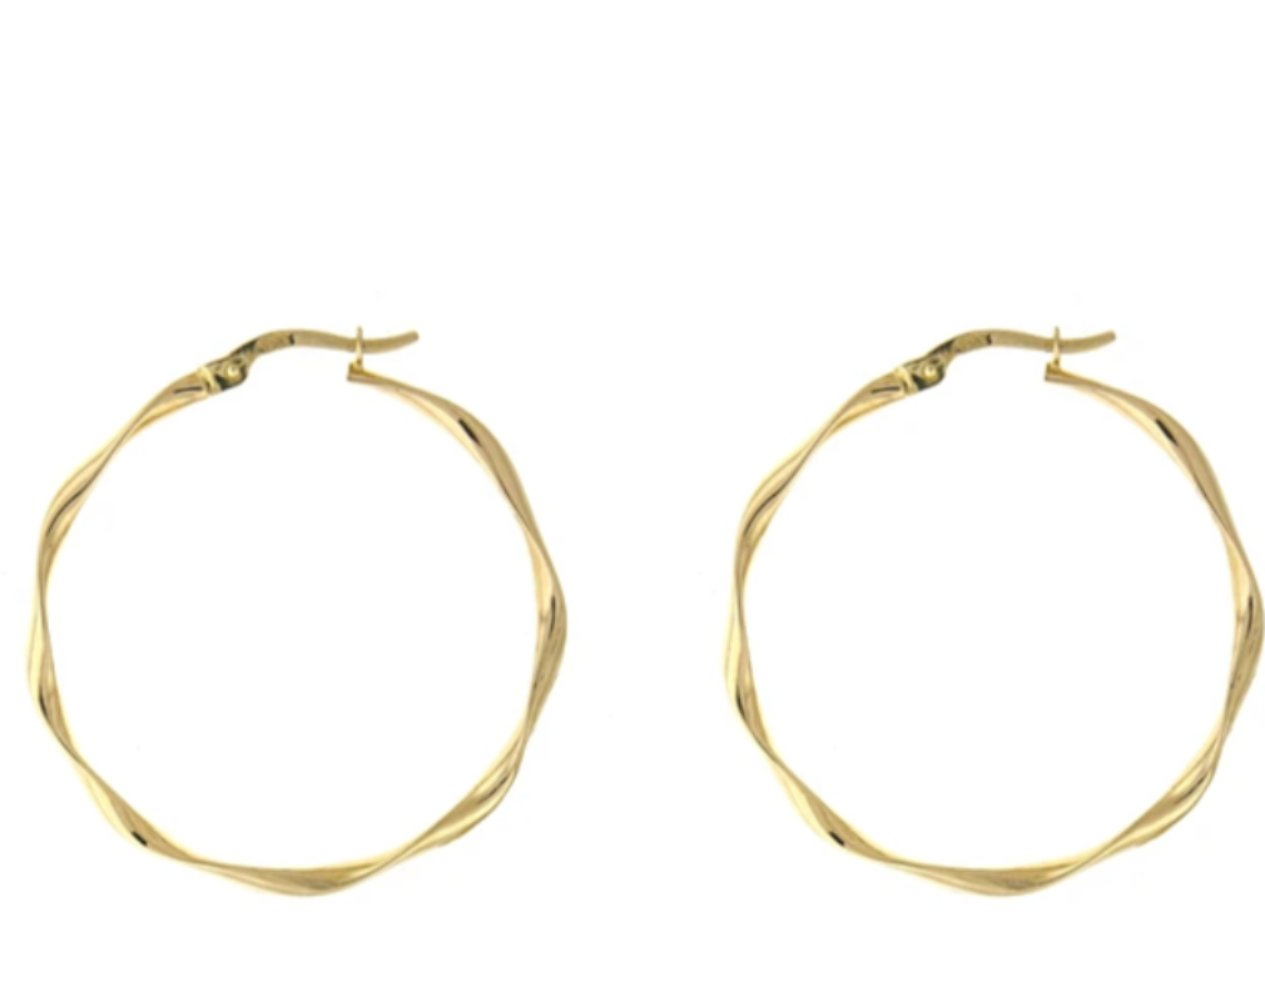 14K Twisted Gold Hoop Earrings